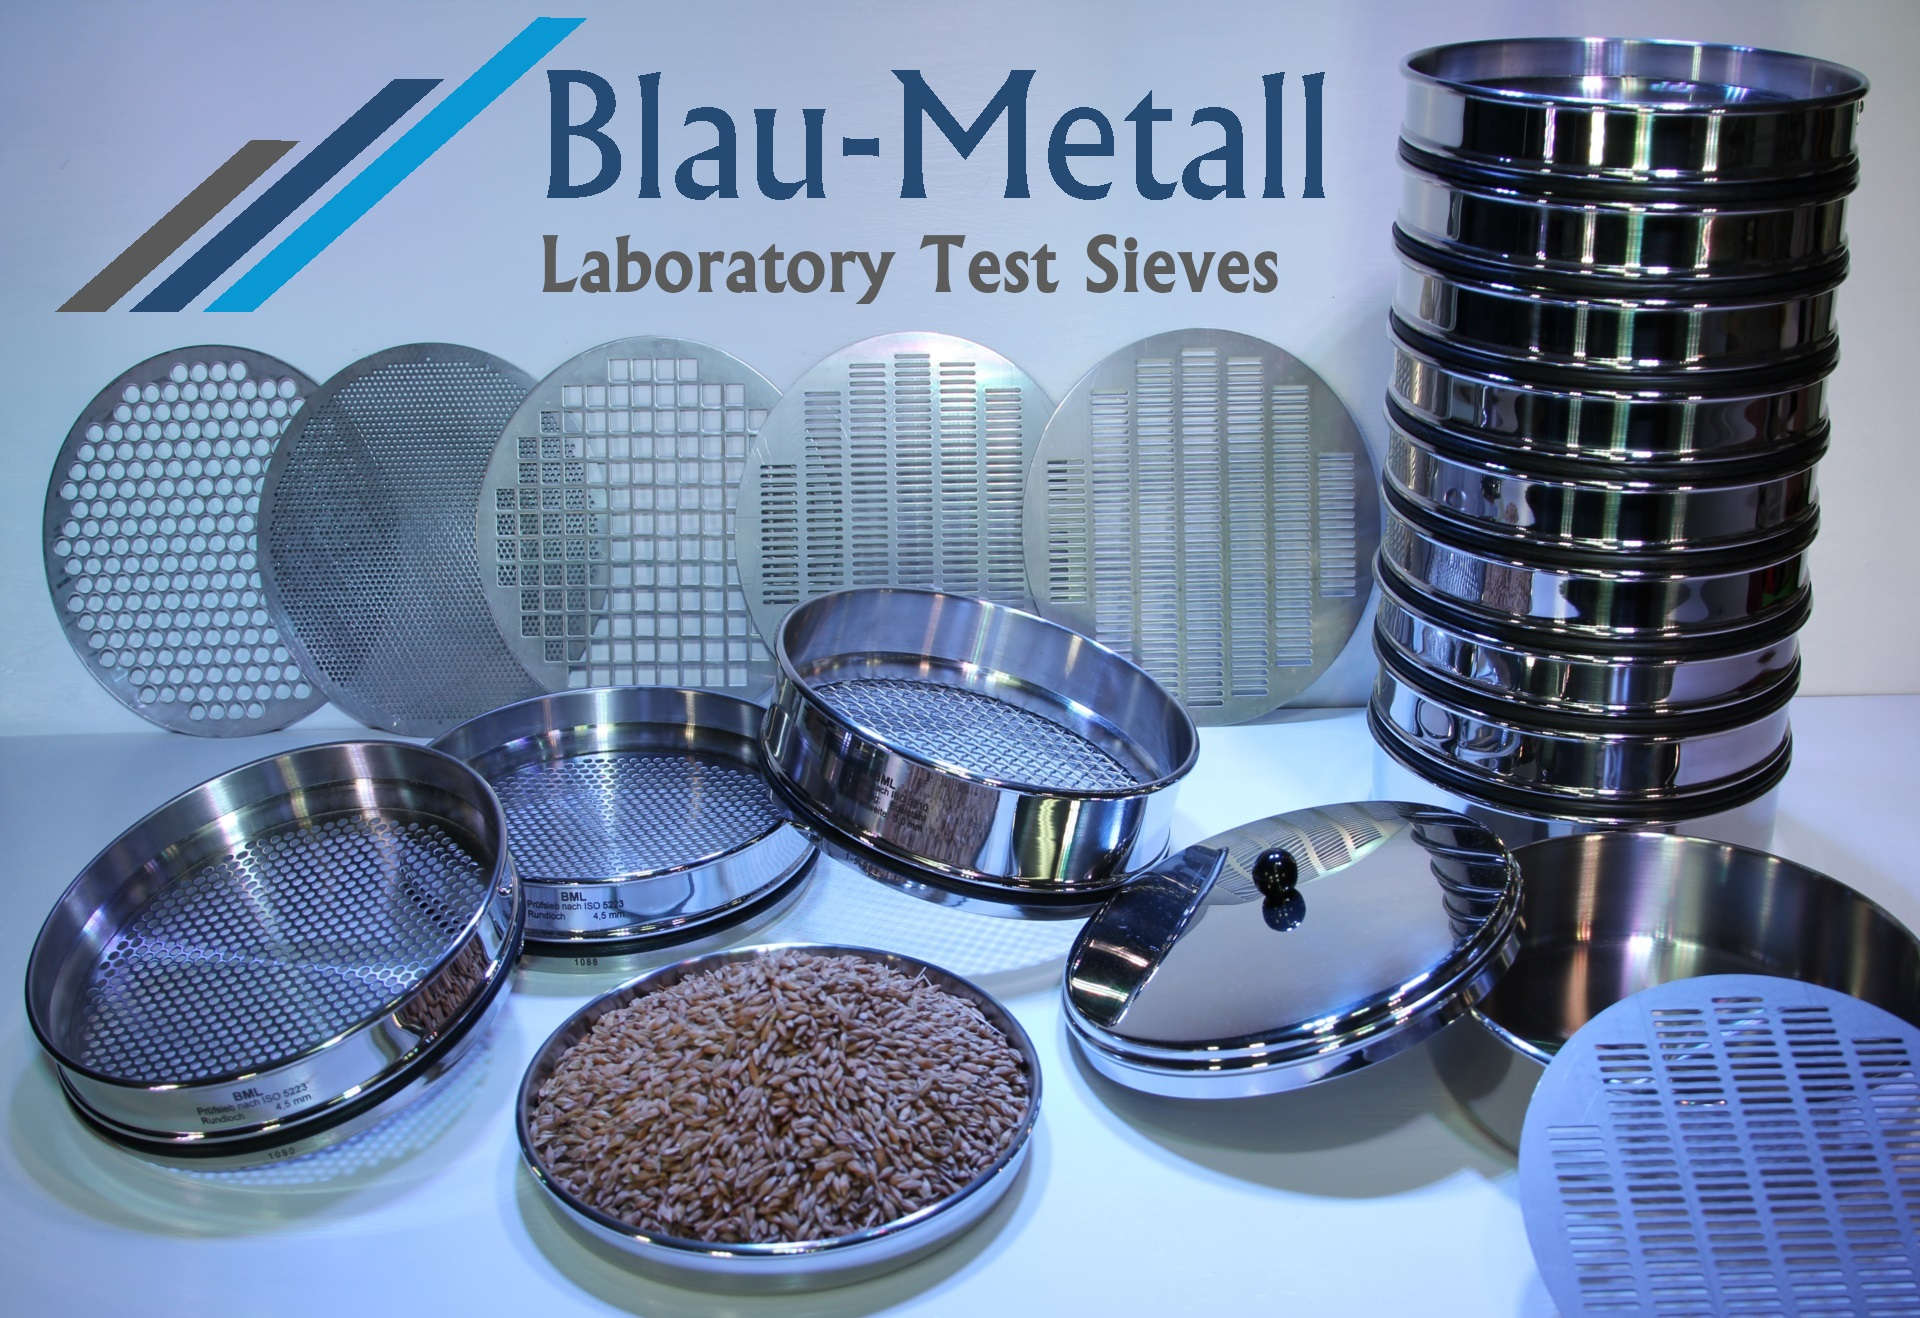 Blau-Metall Laboratory Sieves